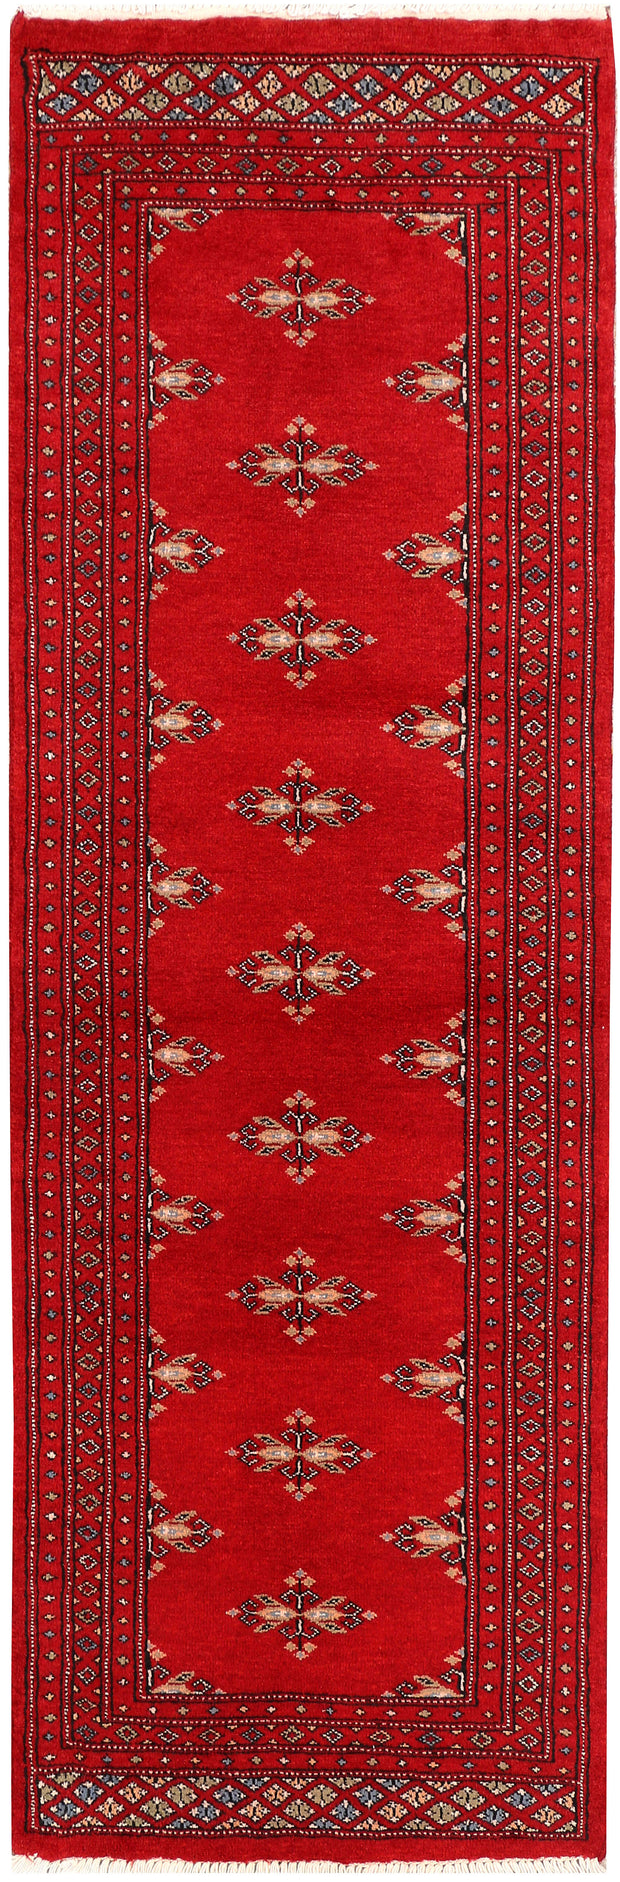 Red Butterfly 2' 1 x 6' - No. 46496 - ALRUG Rug Store